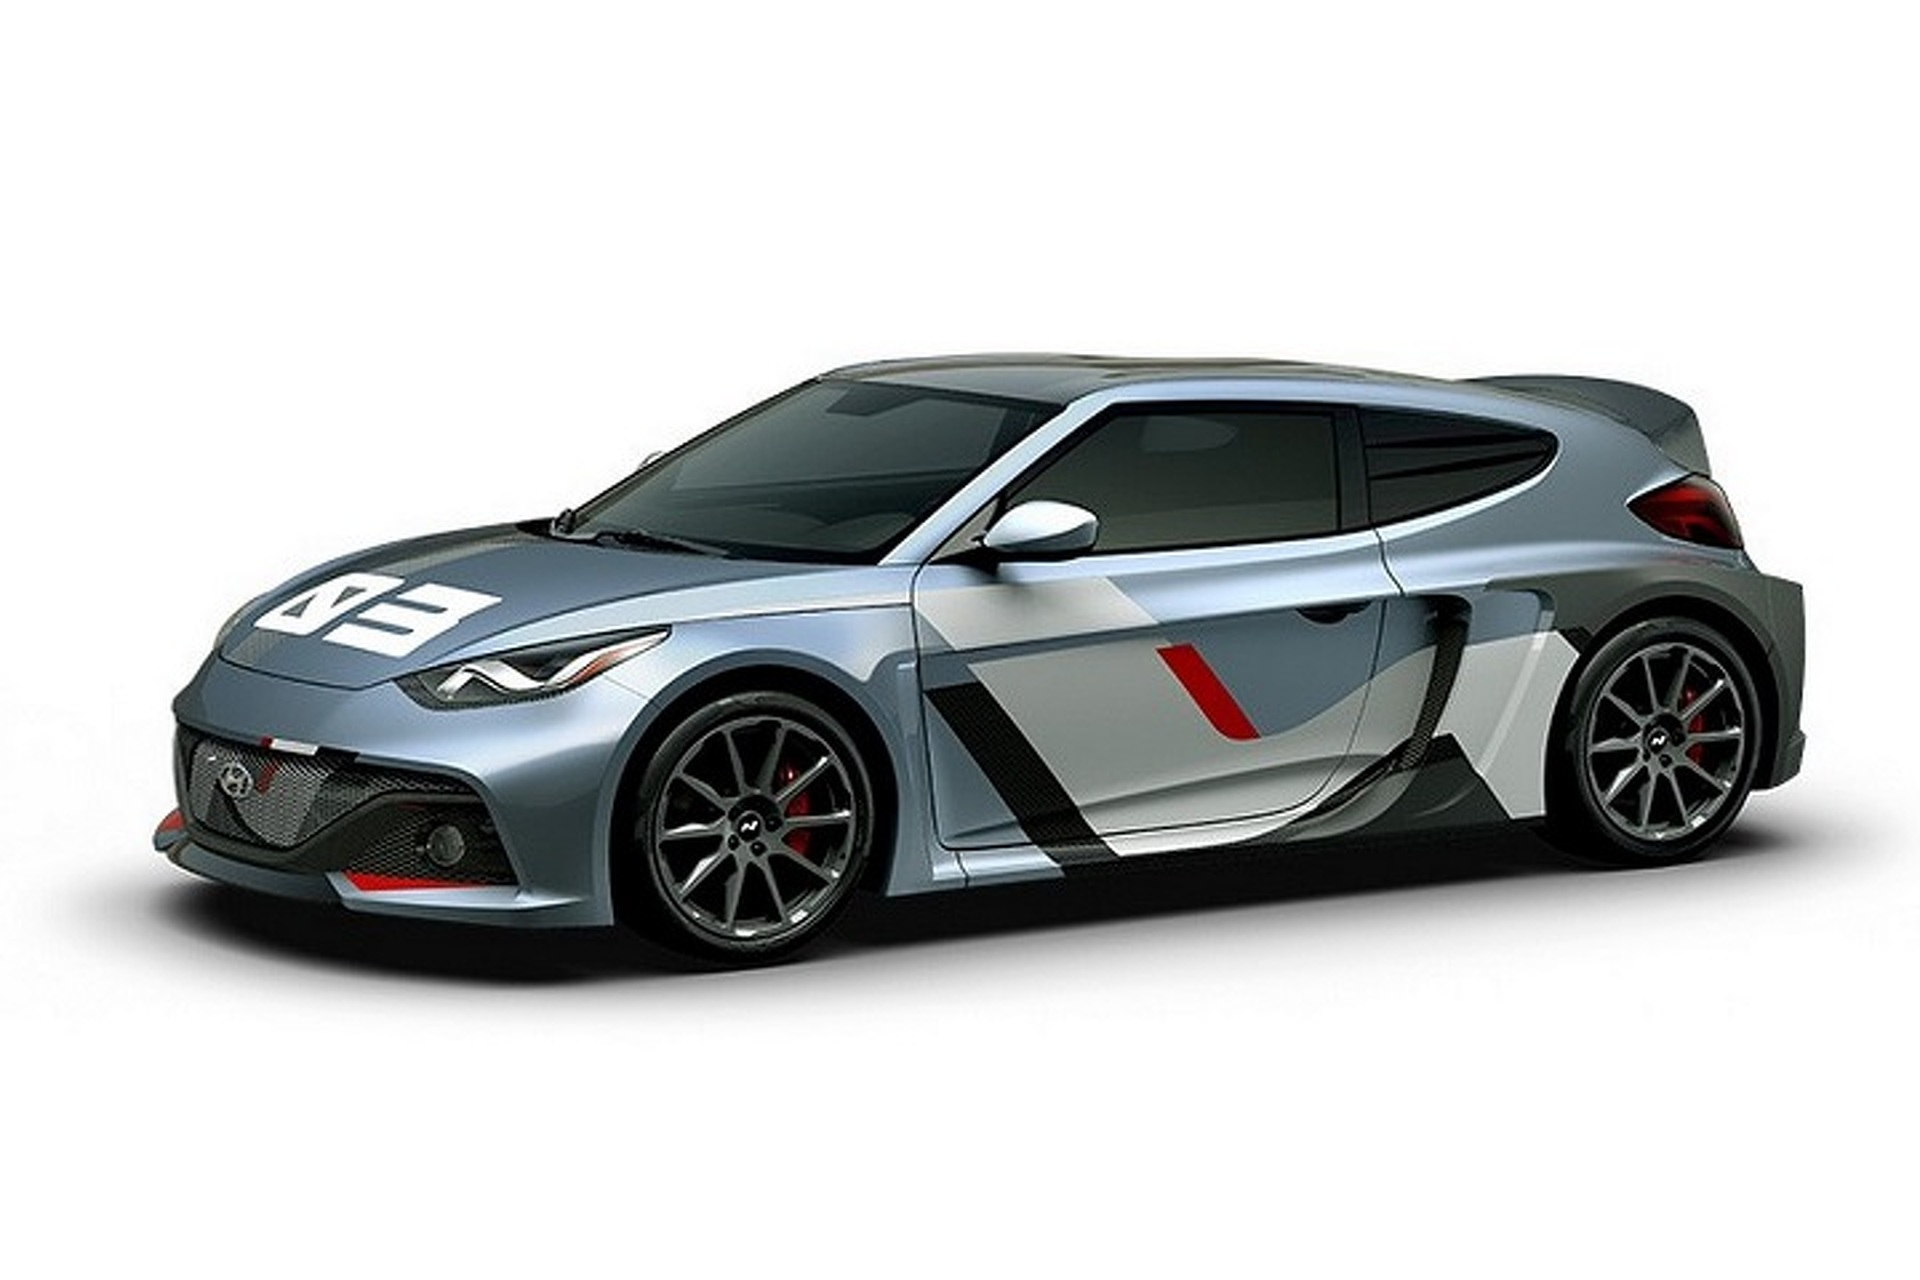 Hyundai Built One Seriously Hot Hatchback Concept